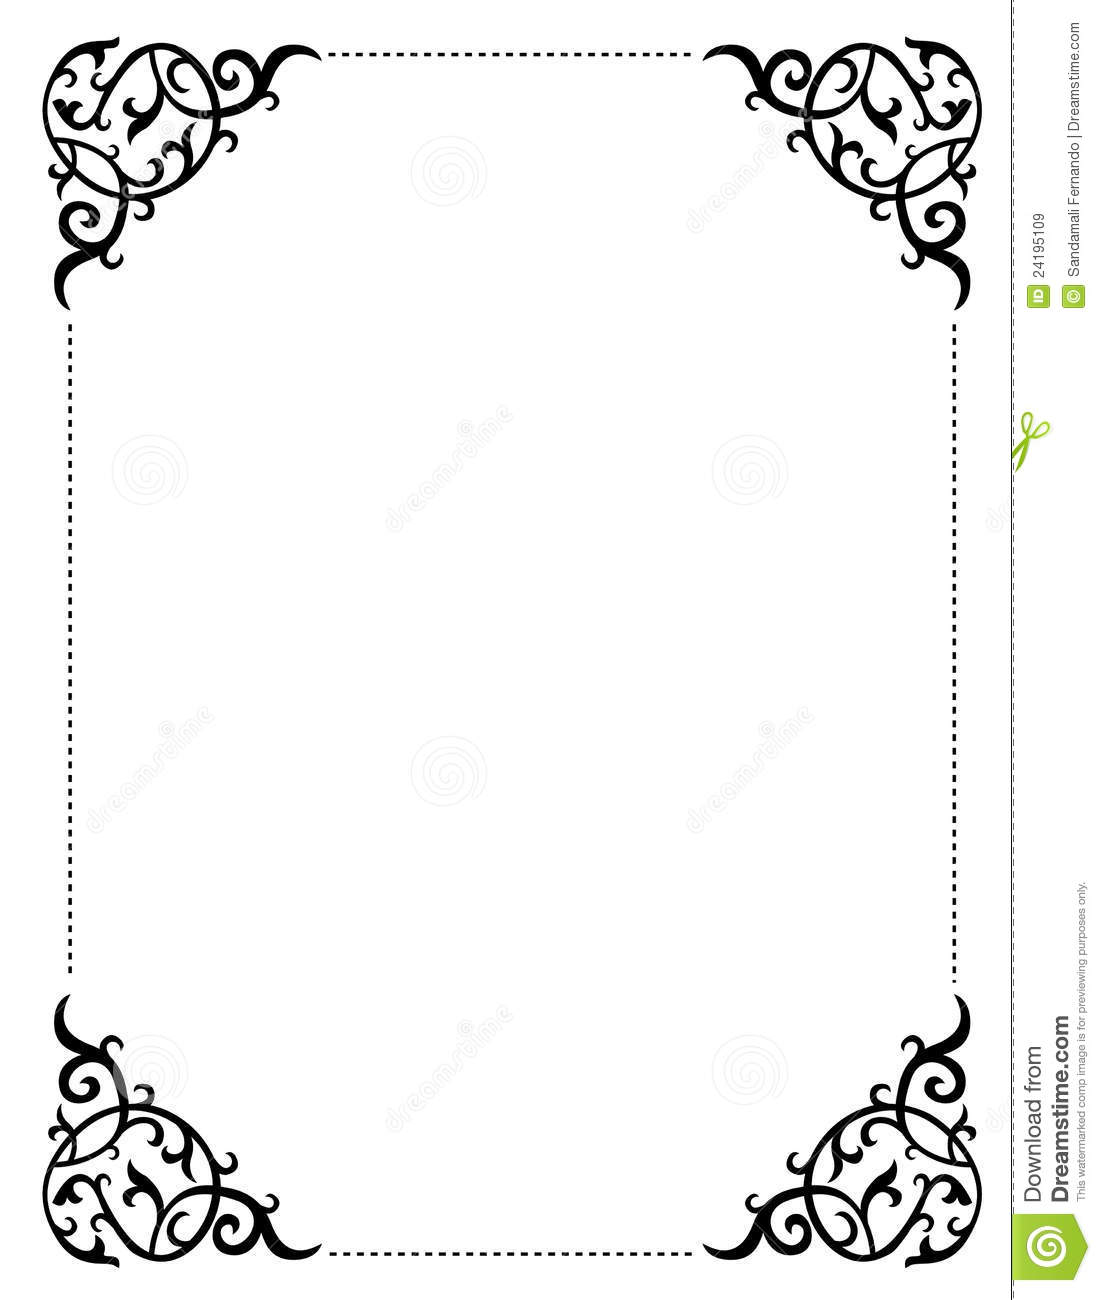 Free Wedding Invitation Borders and Frames